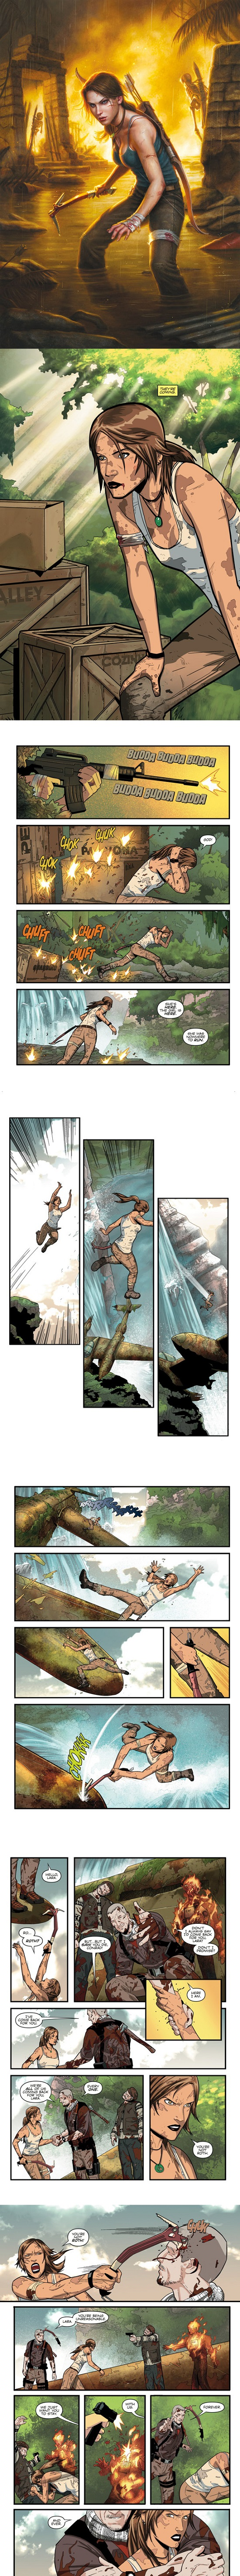 tomb-raider-1-dark-horse-comics